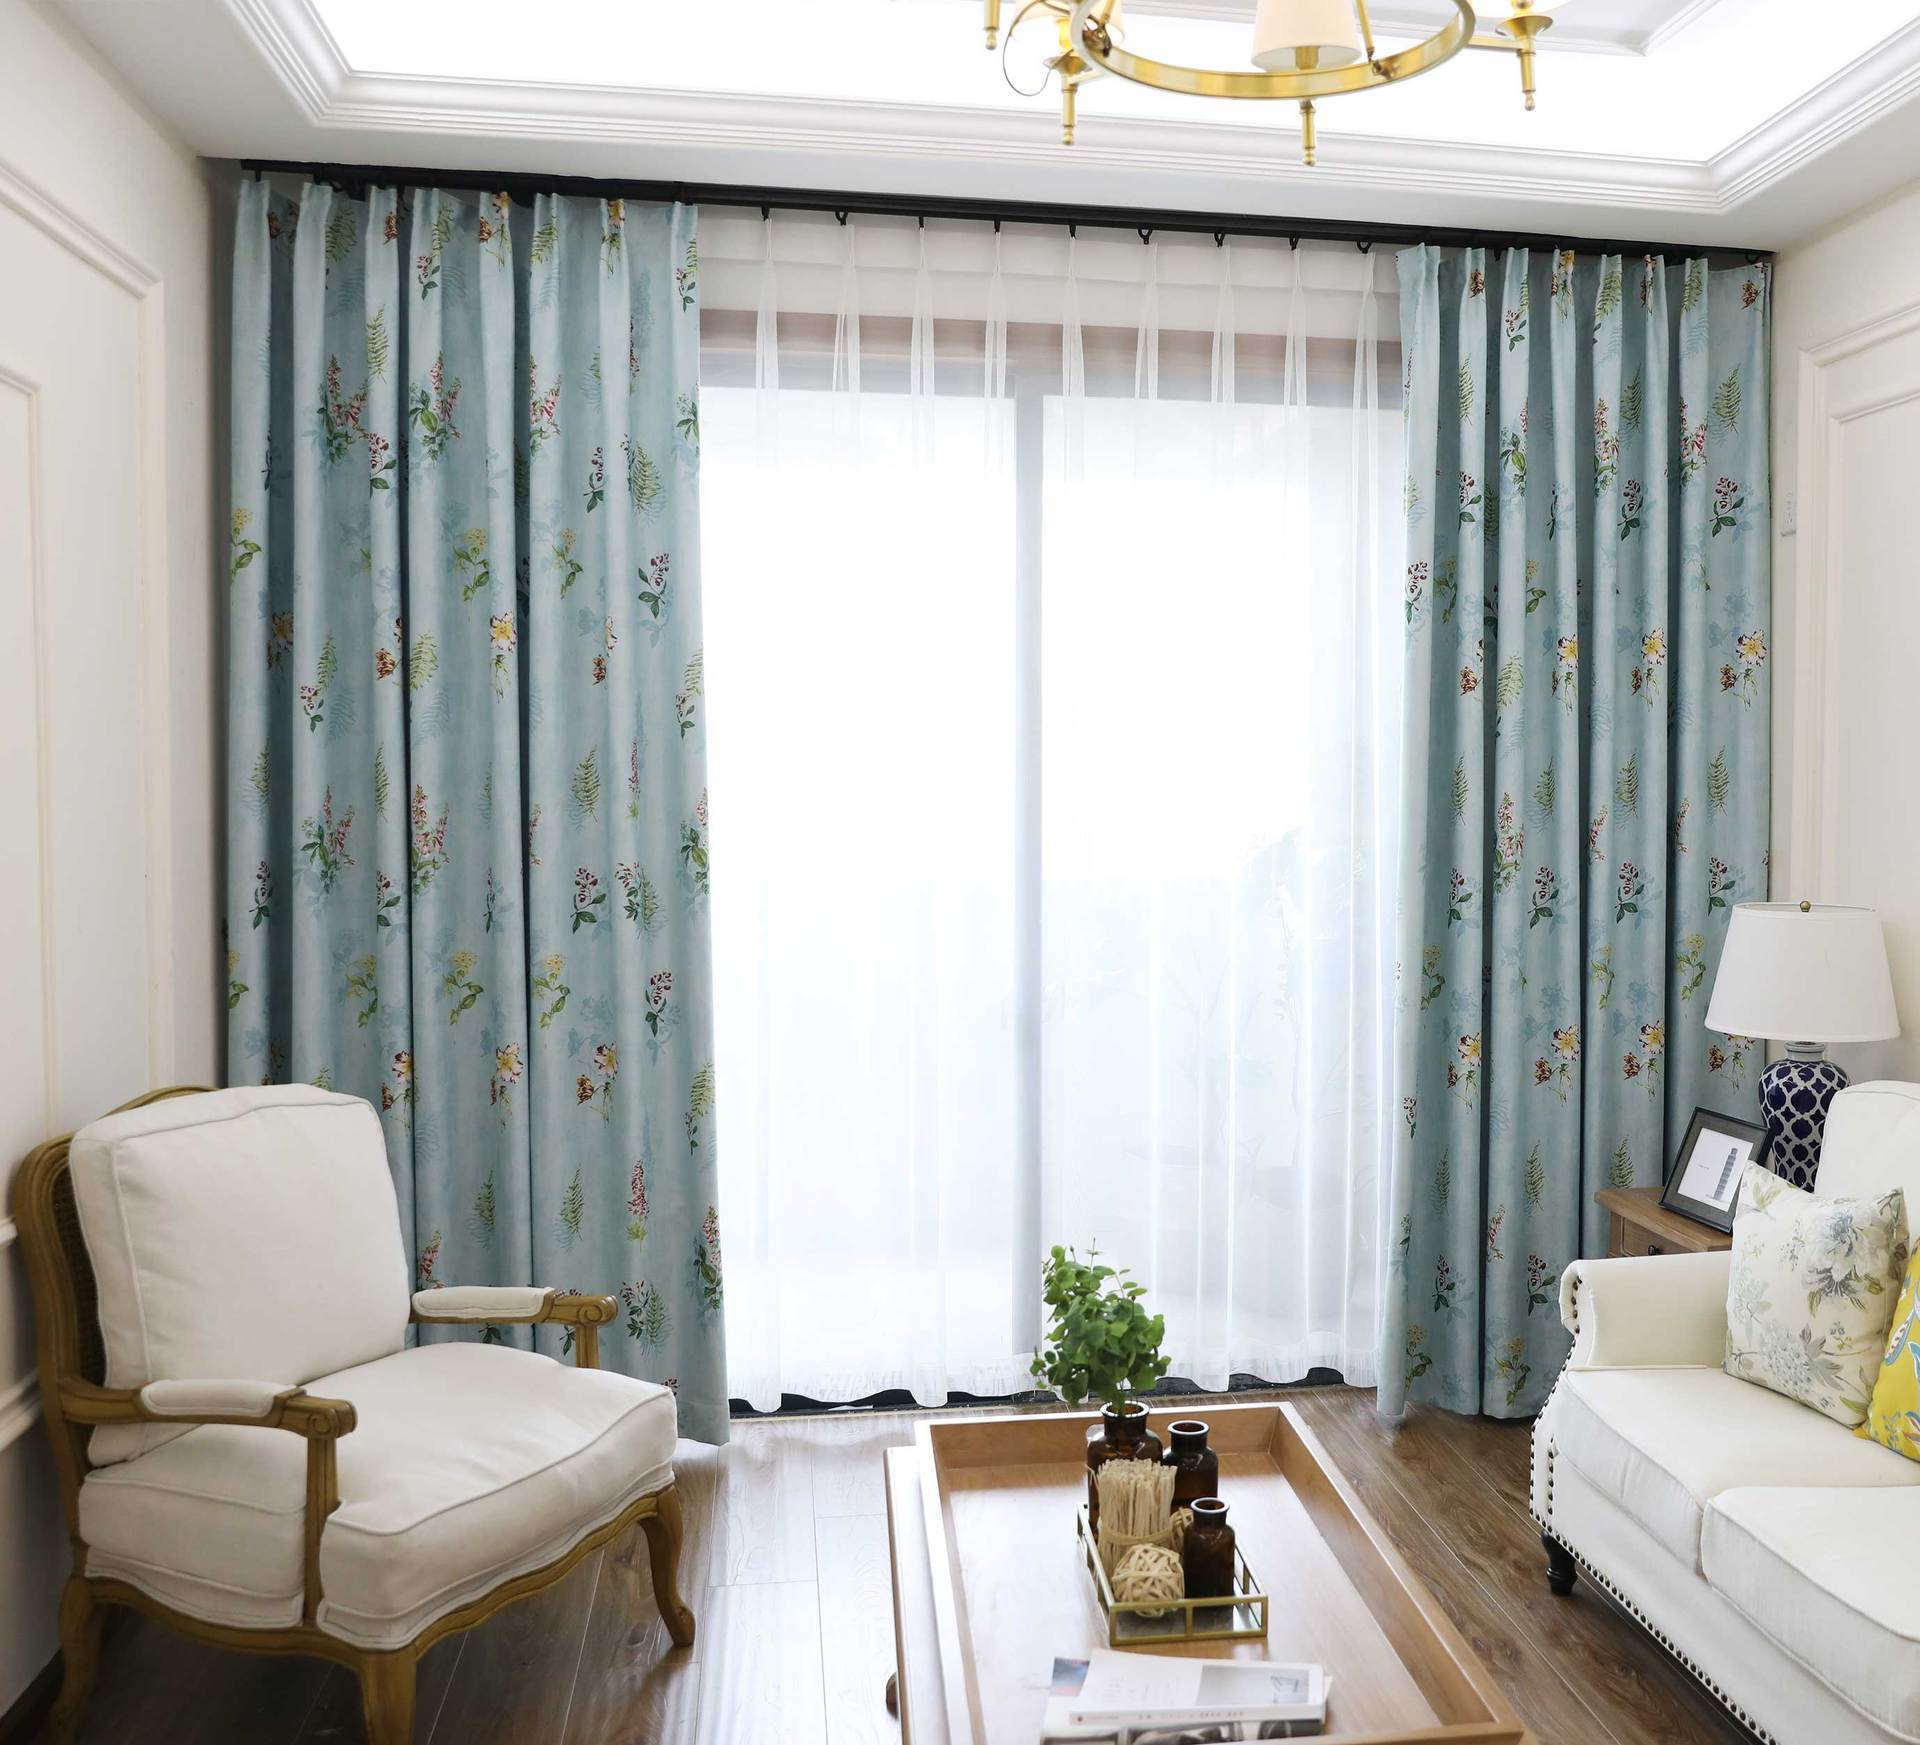 DIHINHOME Home Textile Pastoral Curtain Garden Printing Flower Blackout Curtains Window Drapes For Living Room